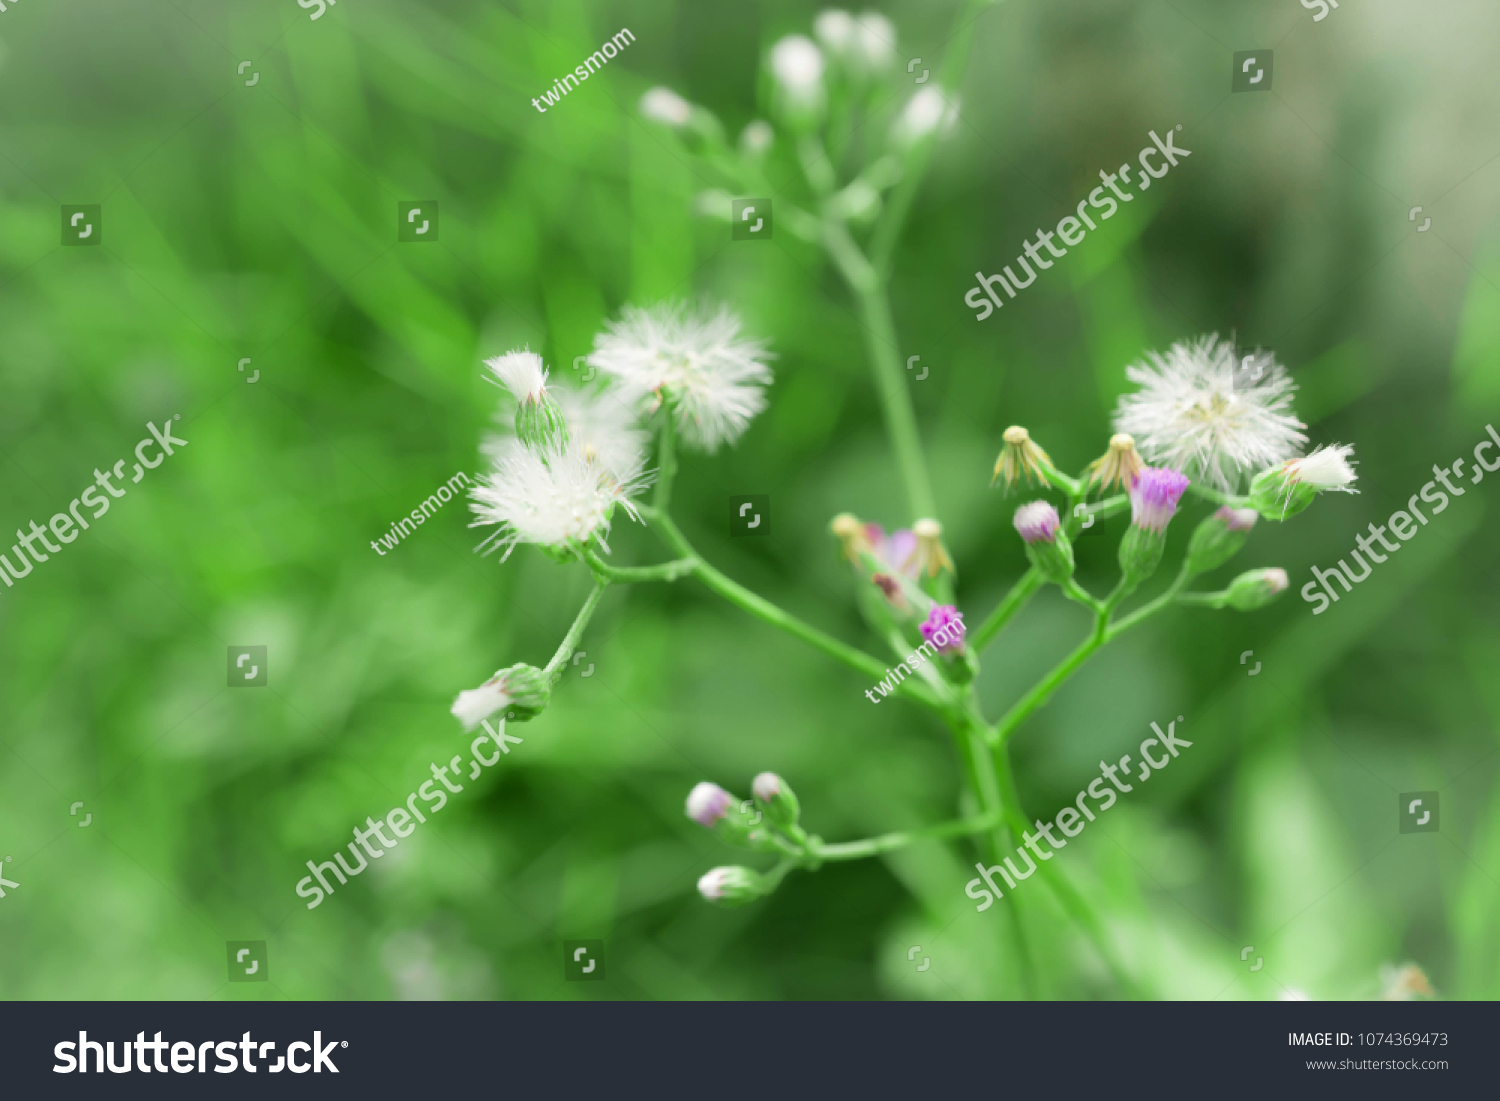 Blur White Flower Little Weed Little Stock Photo Royalty Free